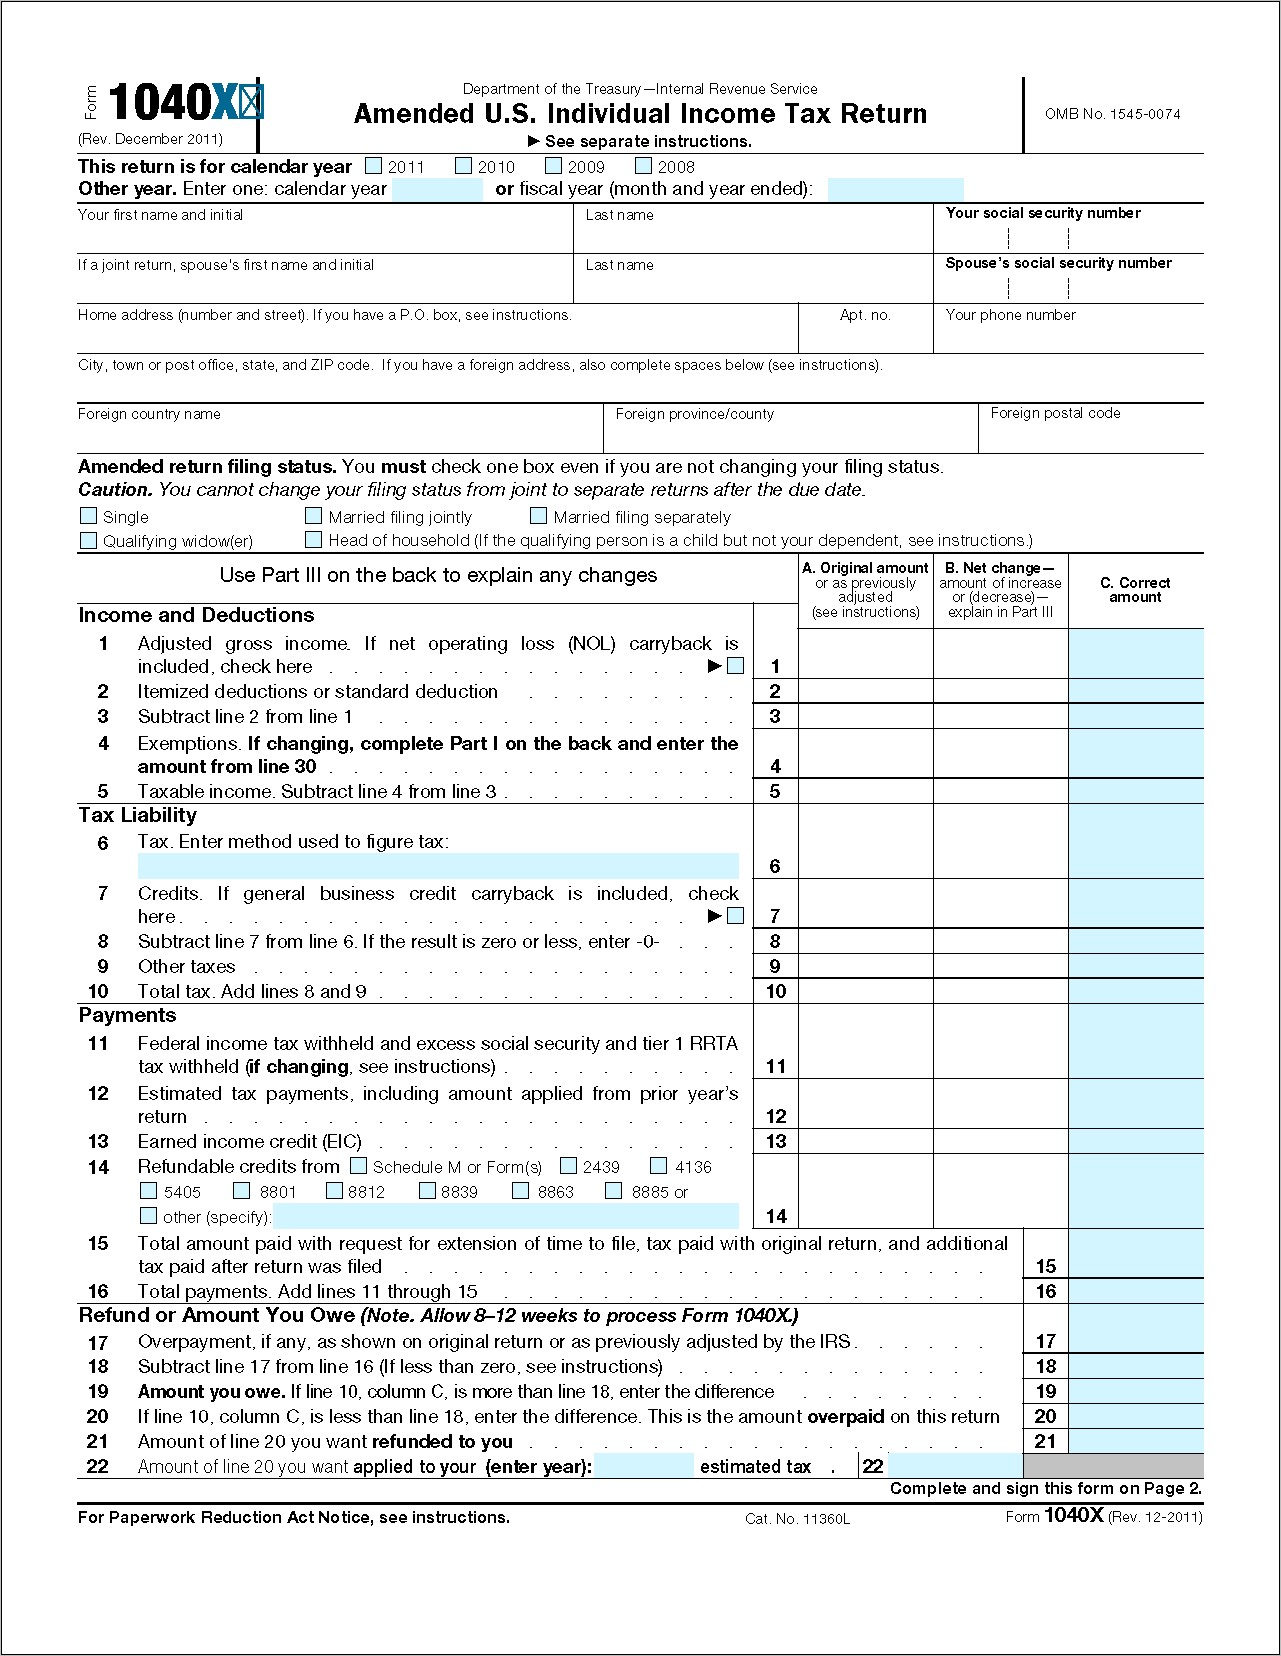 1040 Tax Form 2009 Instructions